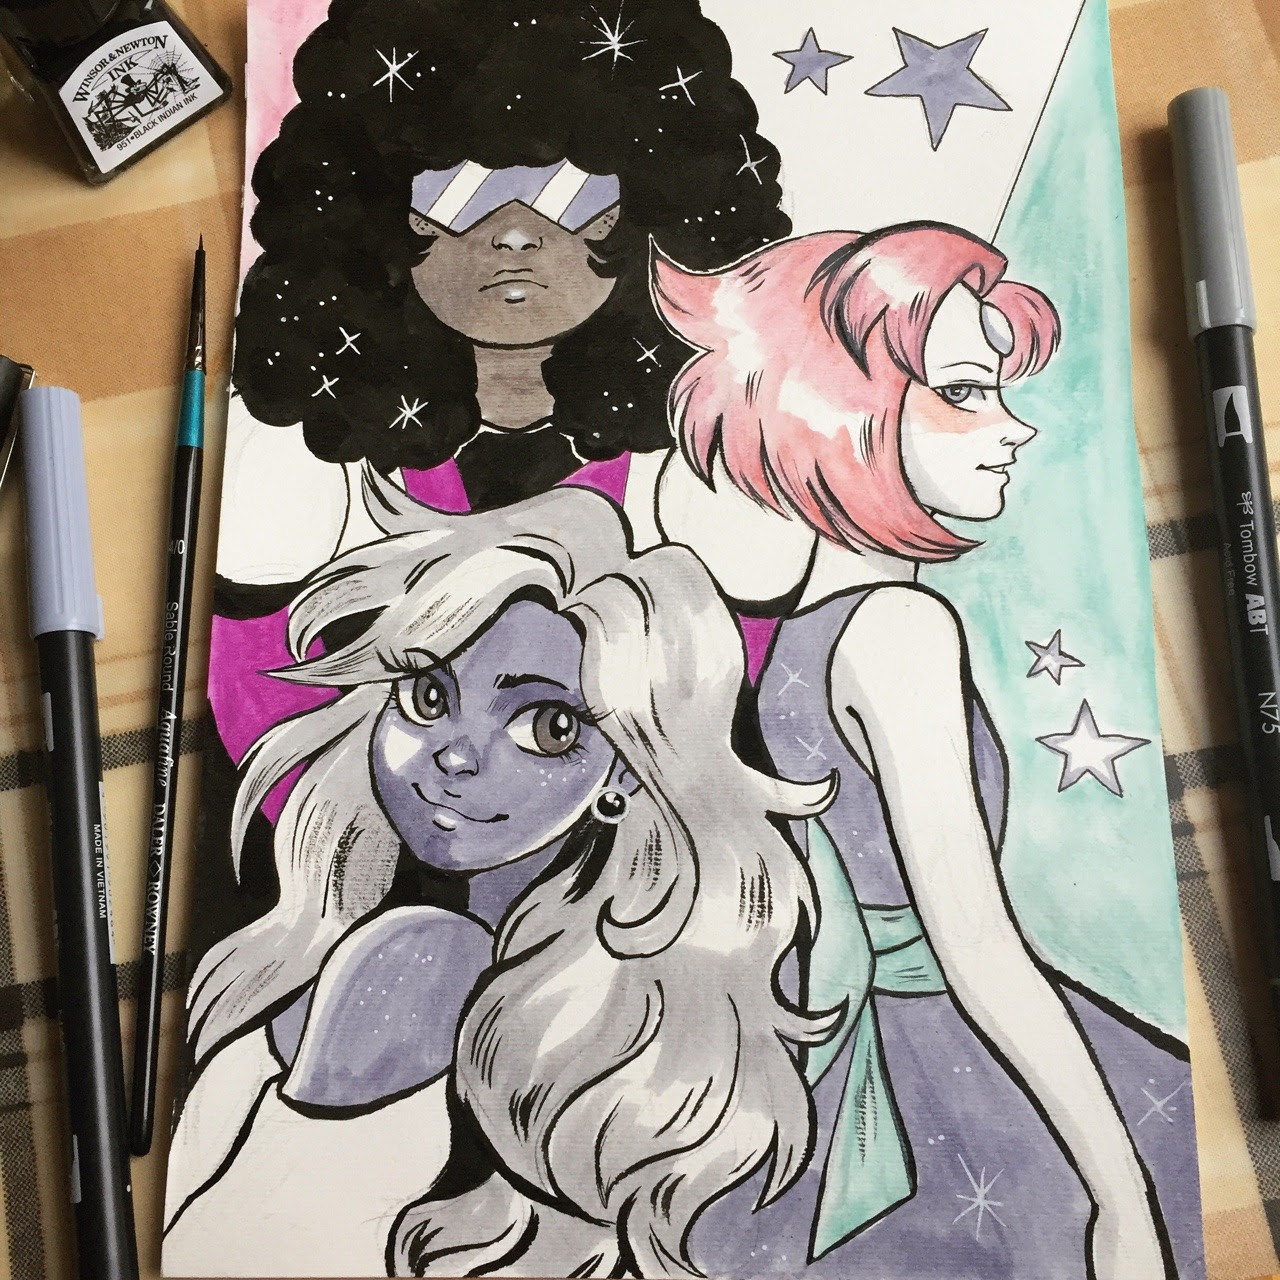 The gals for Inktober day 11, and the guys for day 10!